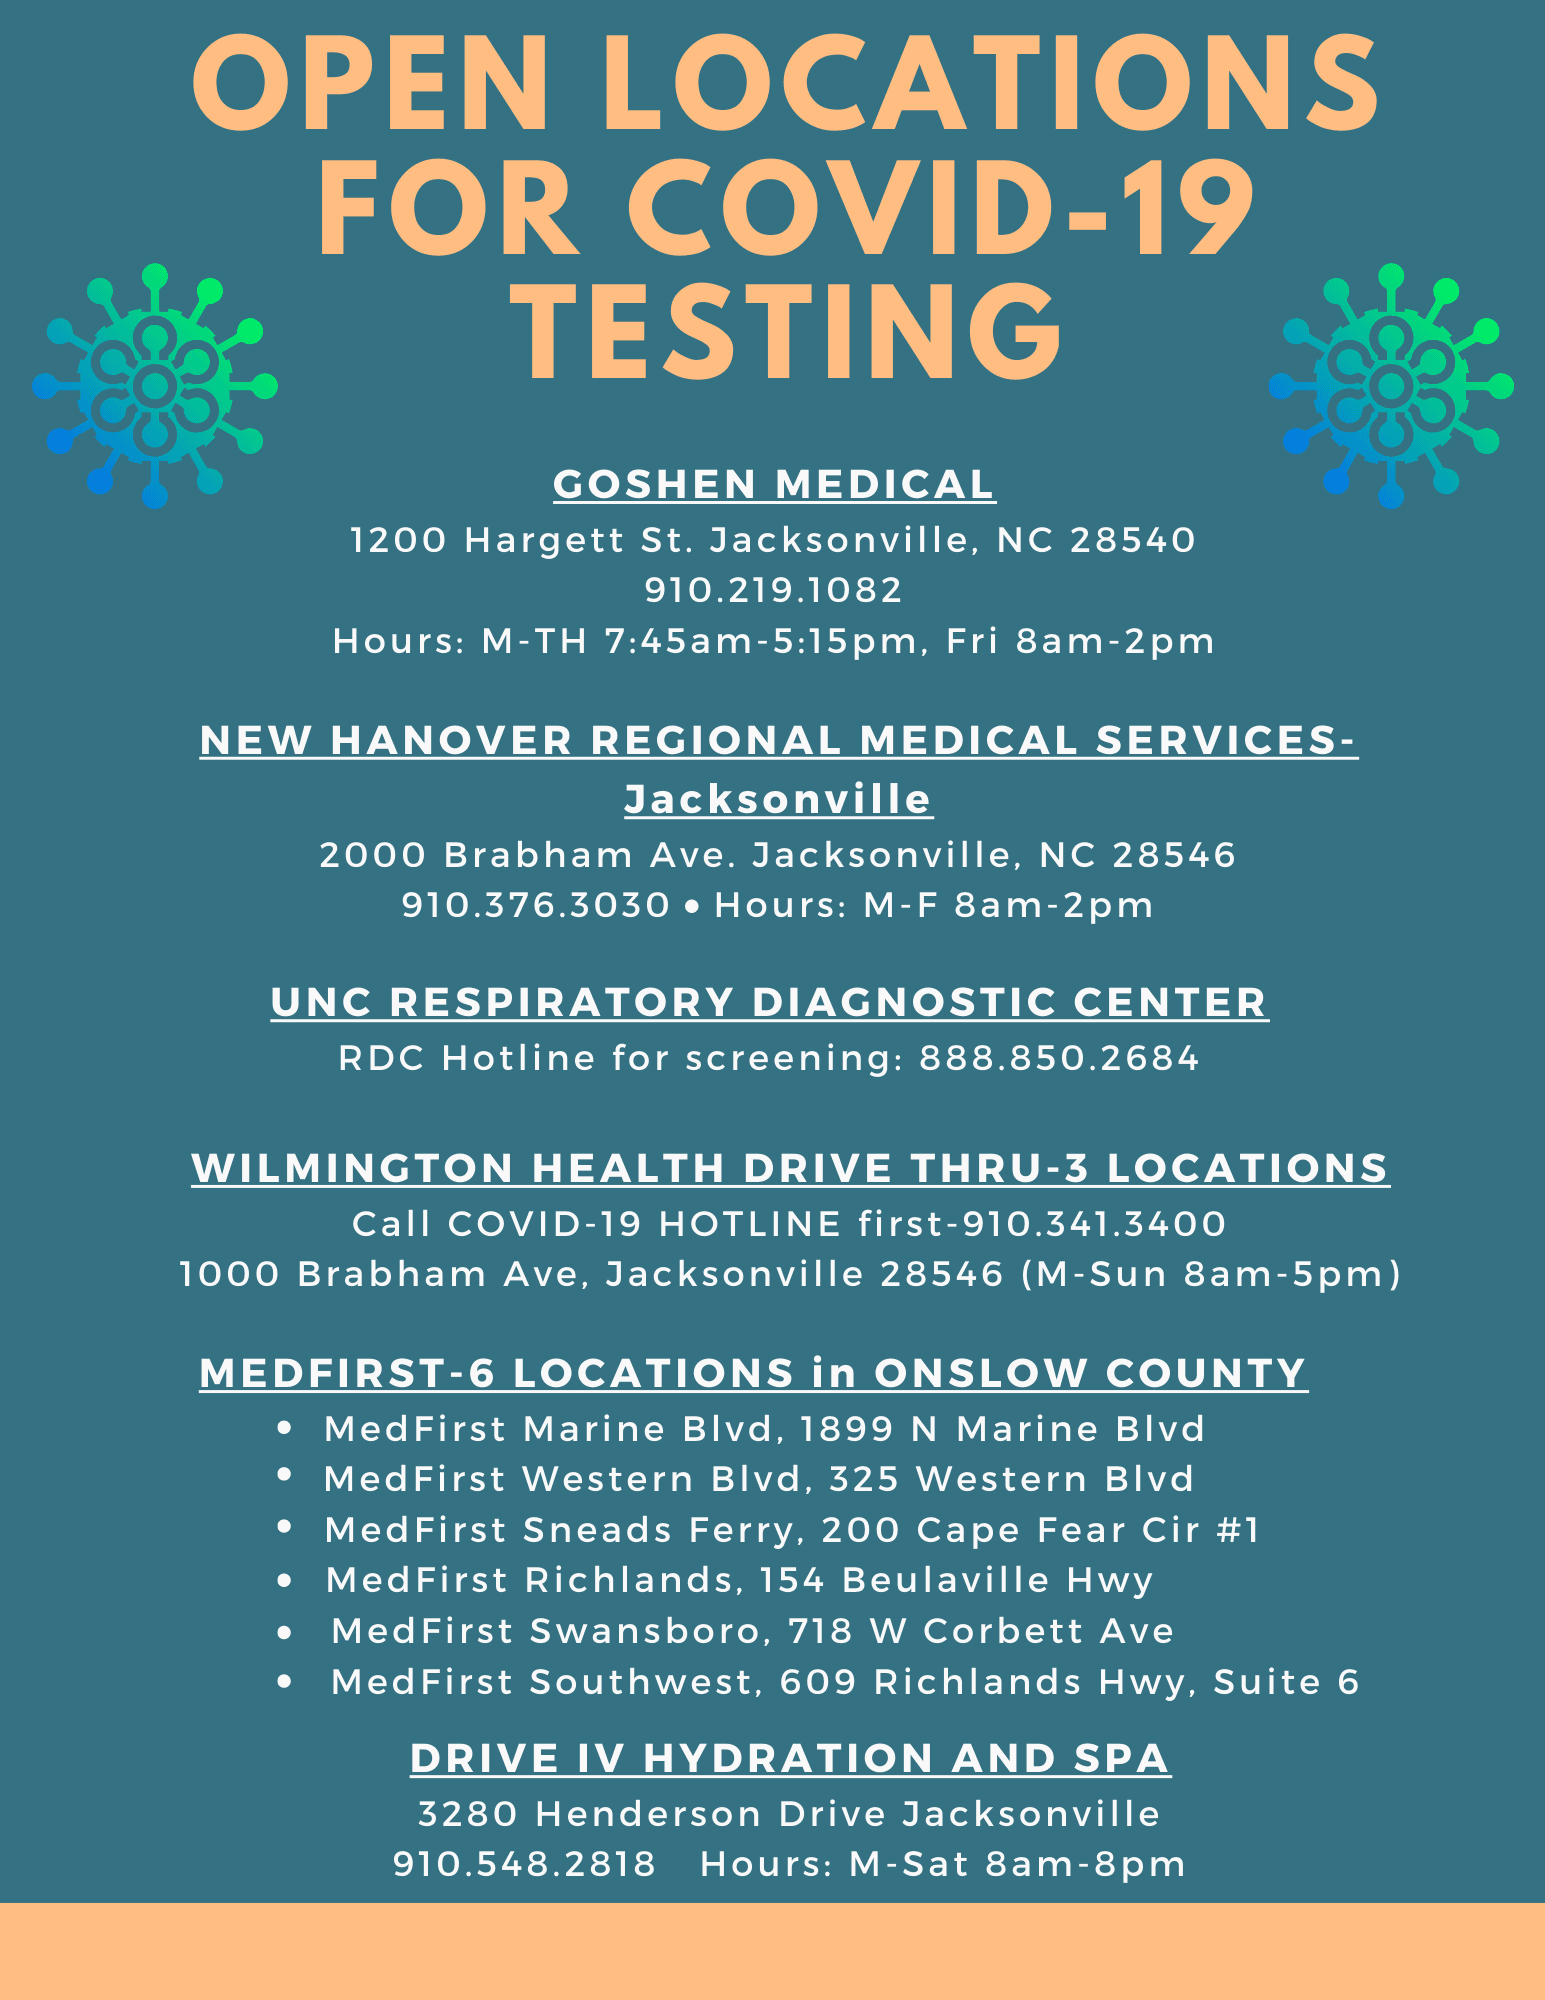 COVID-19 Testing Sites in Onslow County